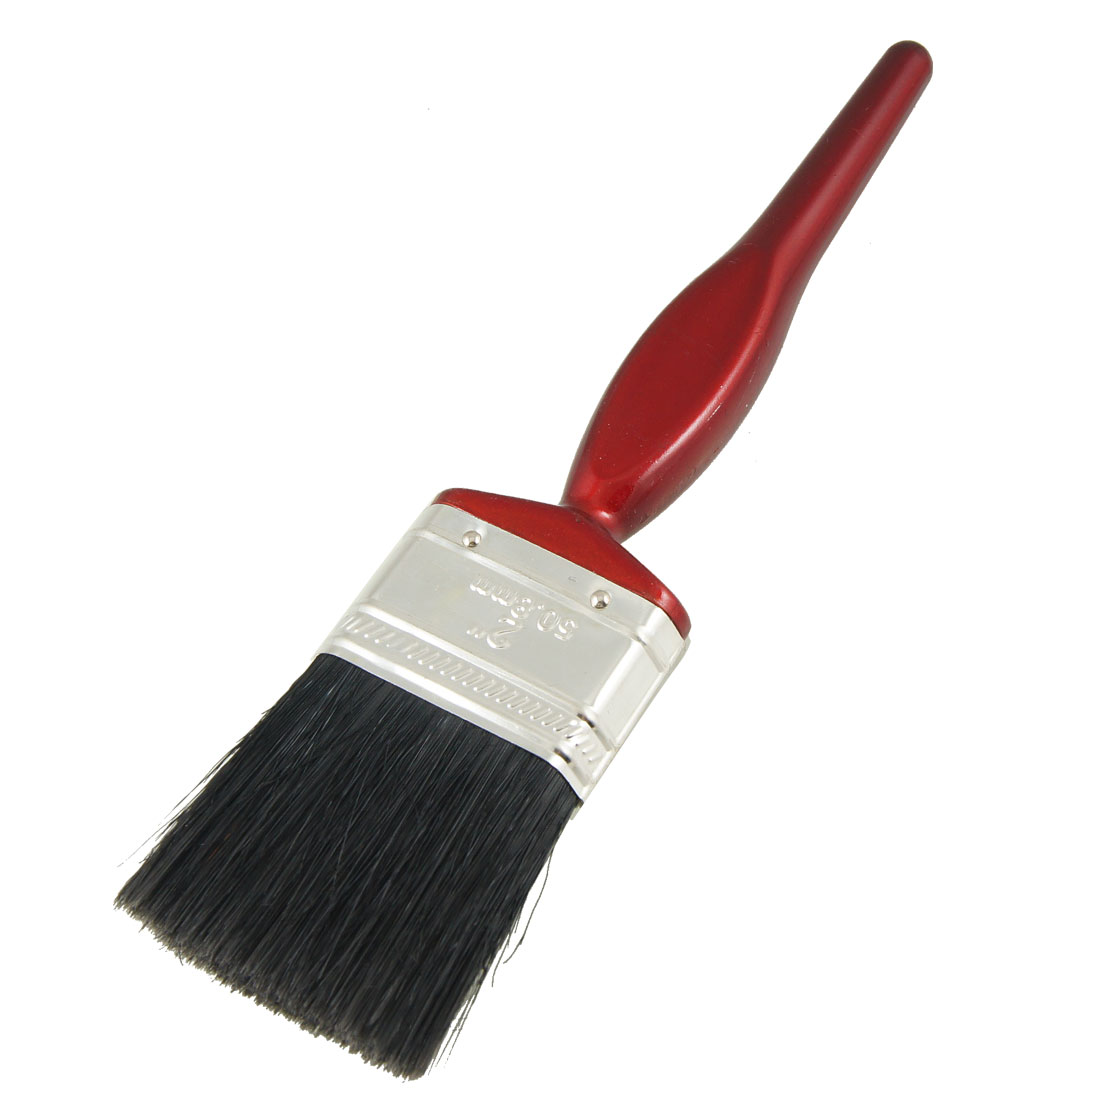 "2"" Wide Black Bristle Dark Red Handle Paint Brush Painting Tool"